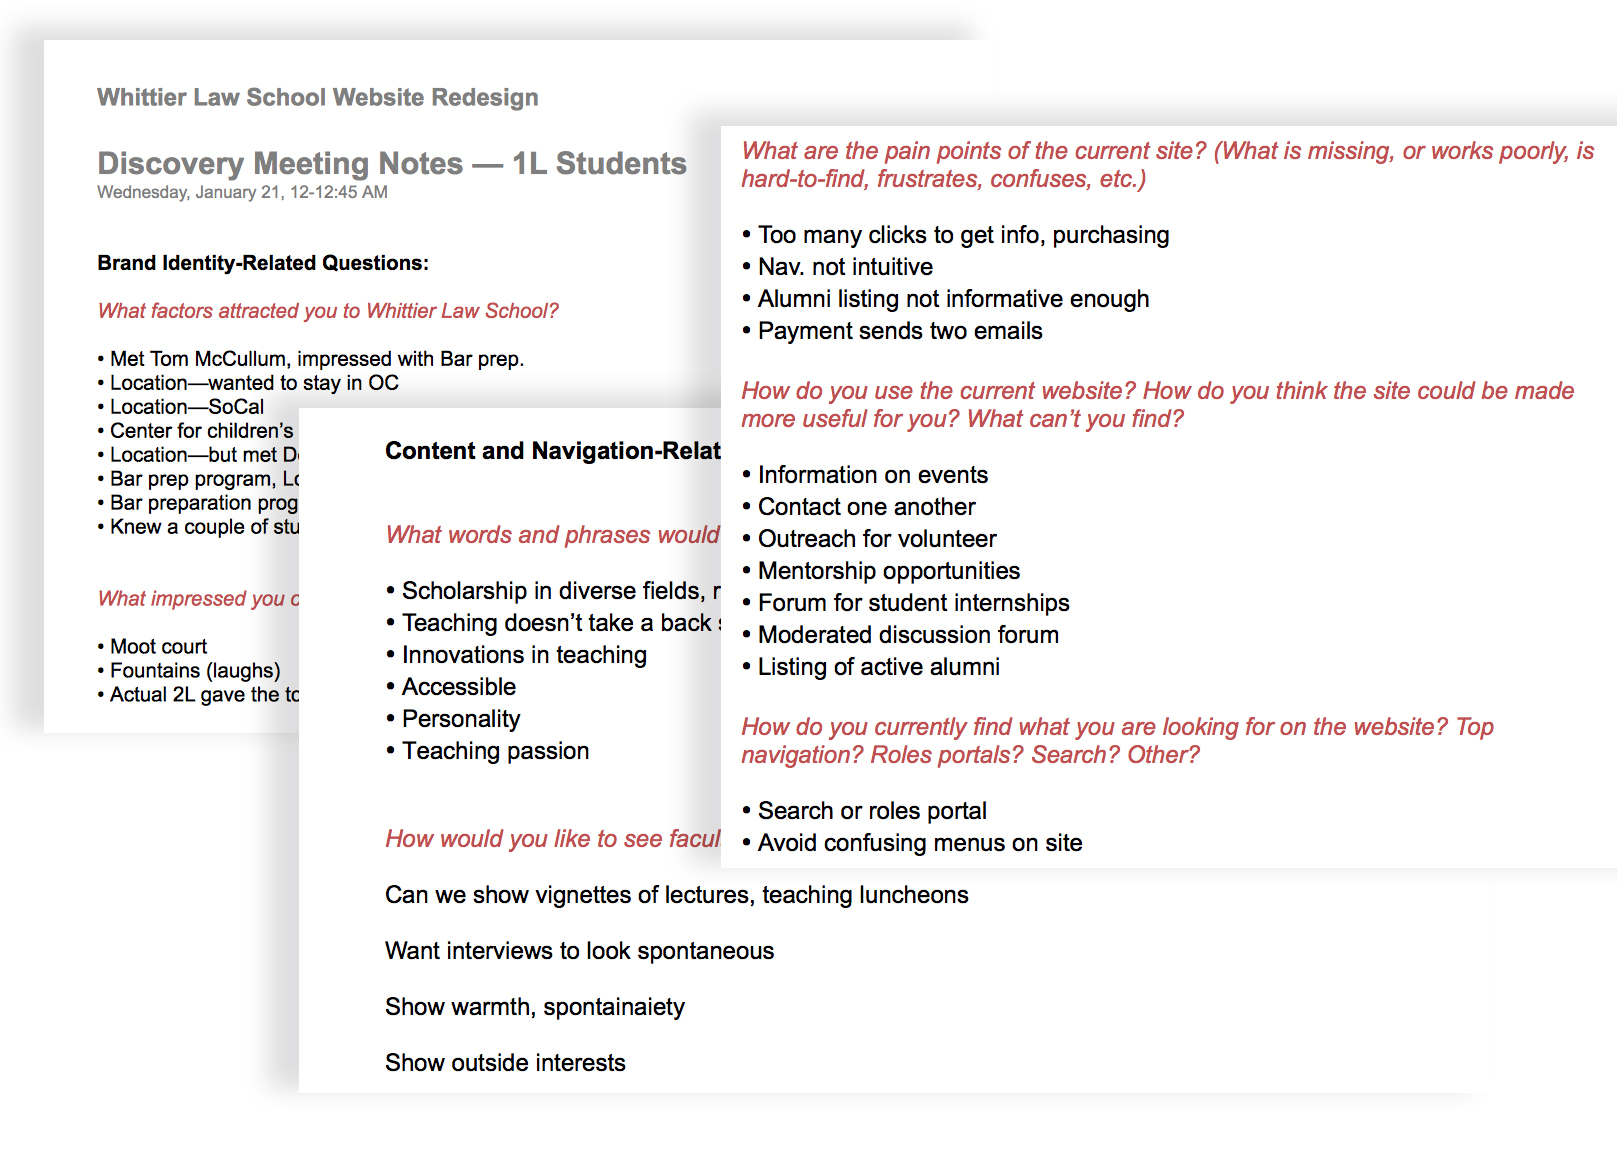 Sample from questions posed to prospective and current students, alumni, administration and faculty